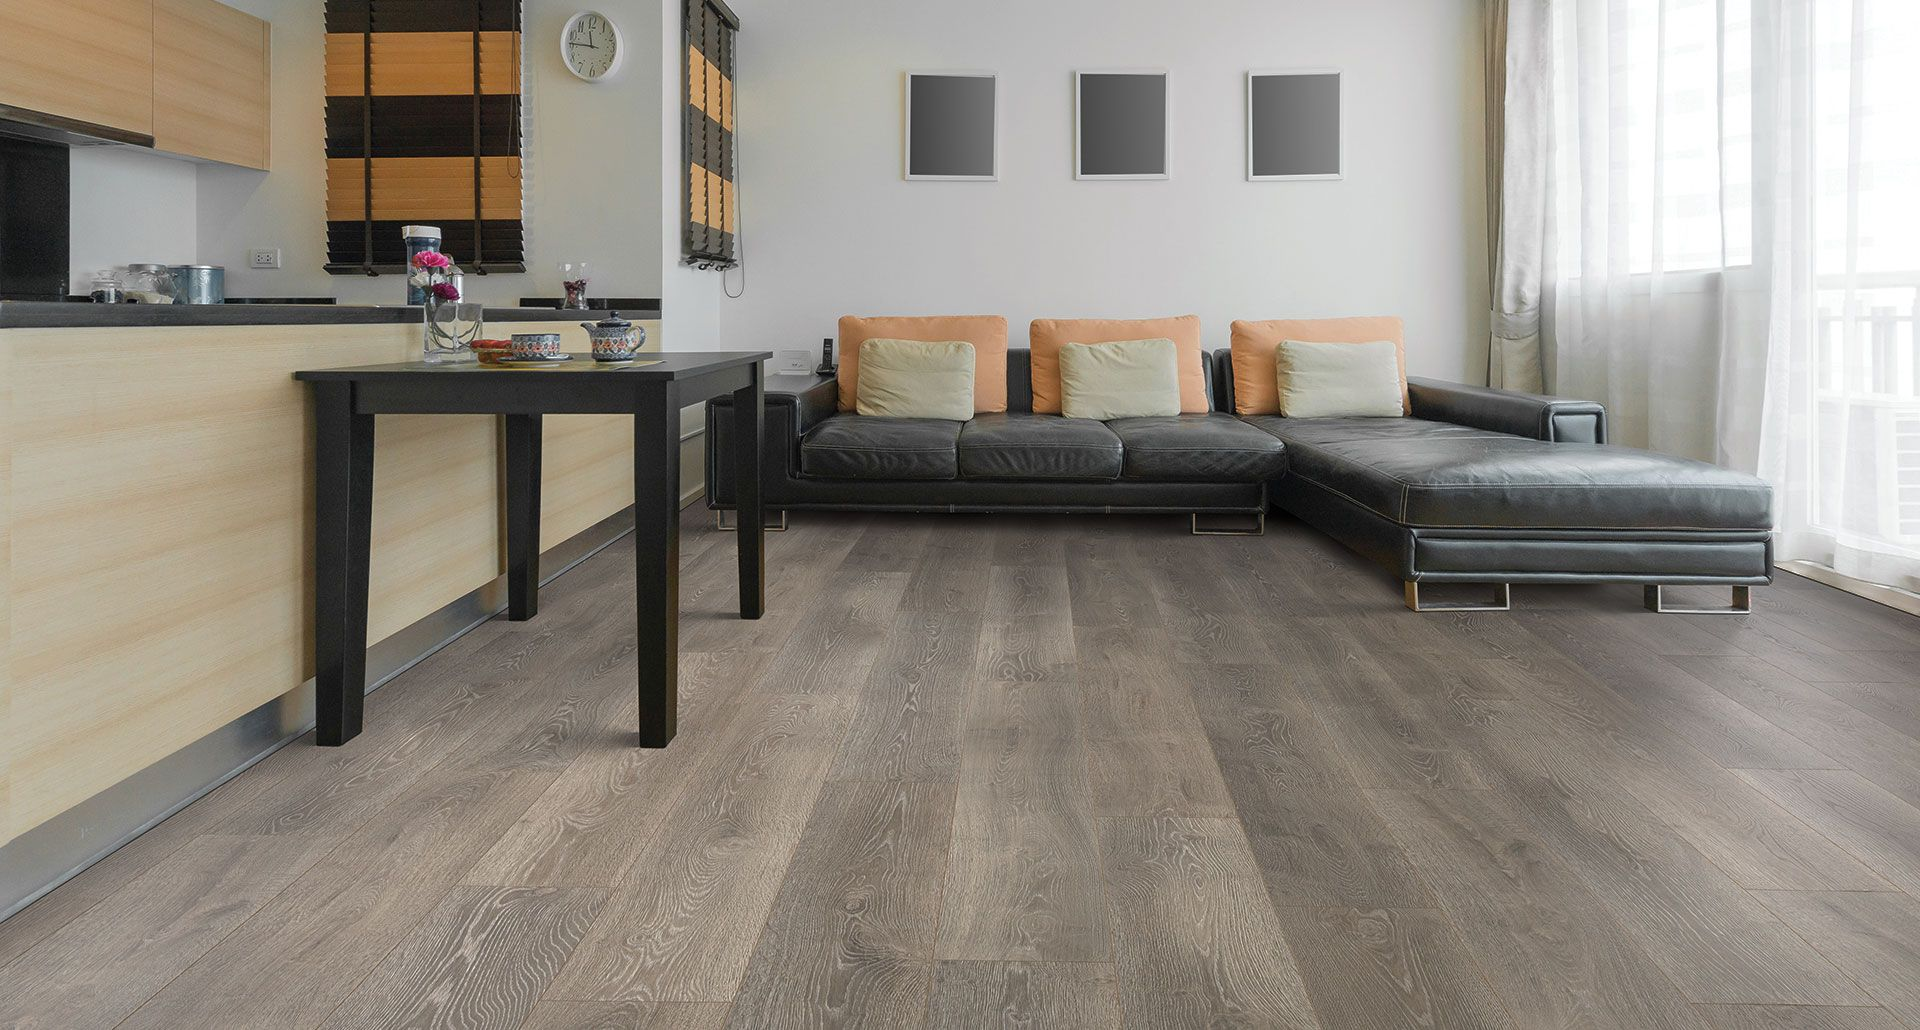 Innovative Pergo Timbercraft Laminate Flooring With A Series Of Unique Features That Create An Authentic Hardwood Look As Well Make It Durable And Easy